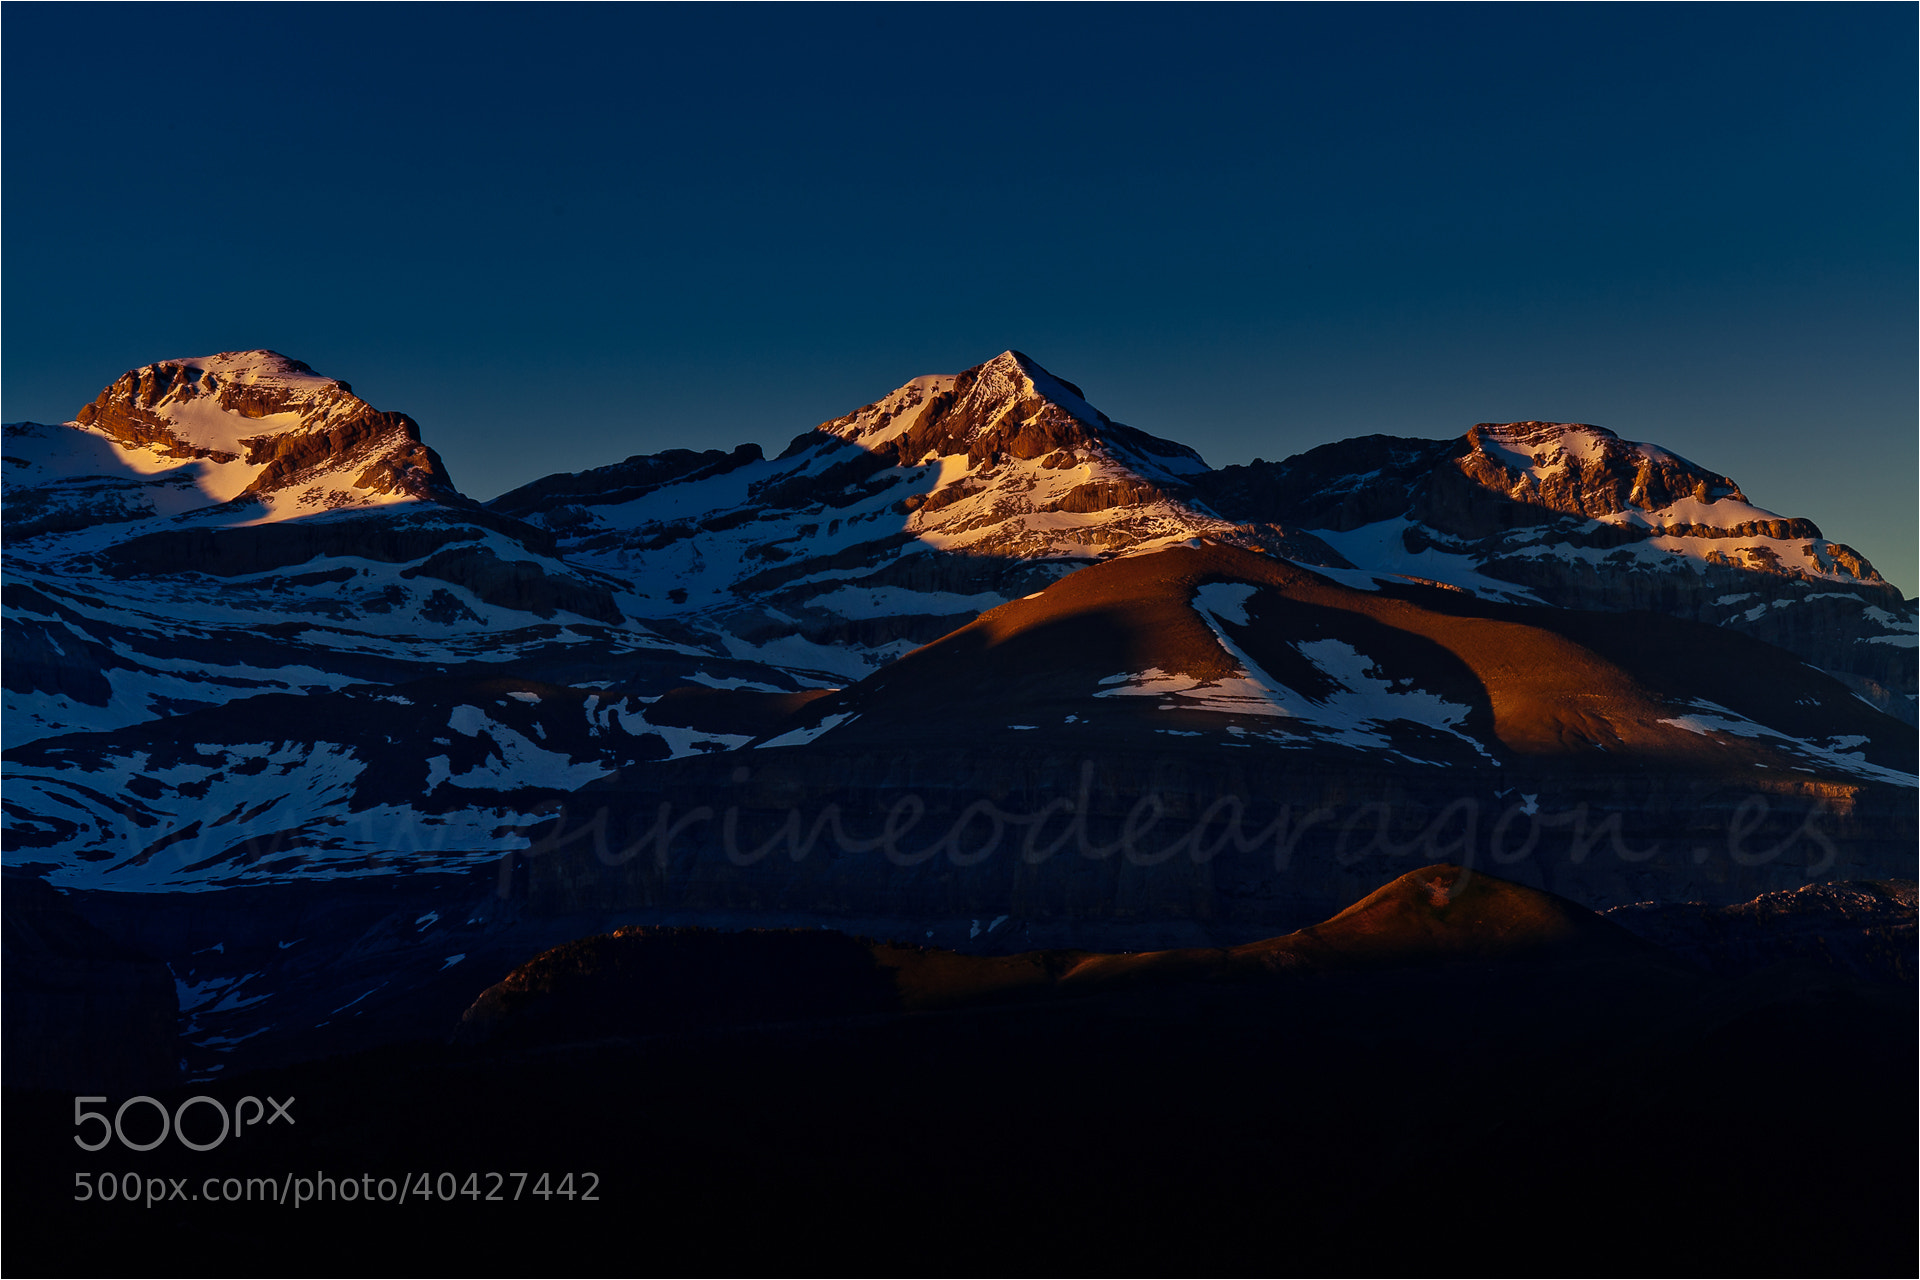 Photograph Monte Perdido (Huesca) by Ferran Cartagena  on 500px